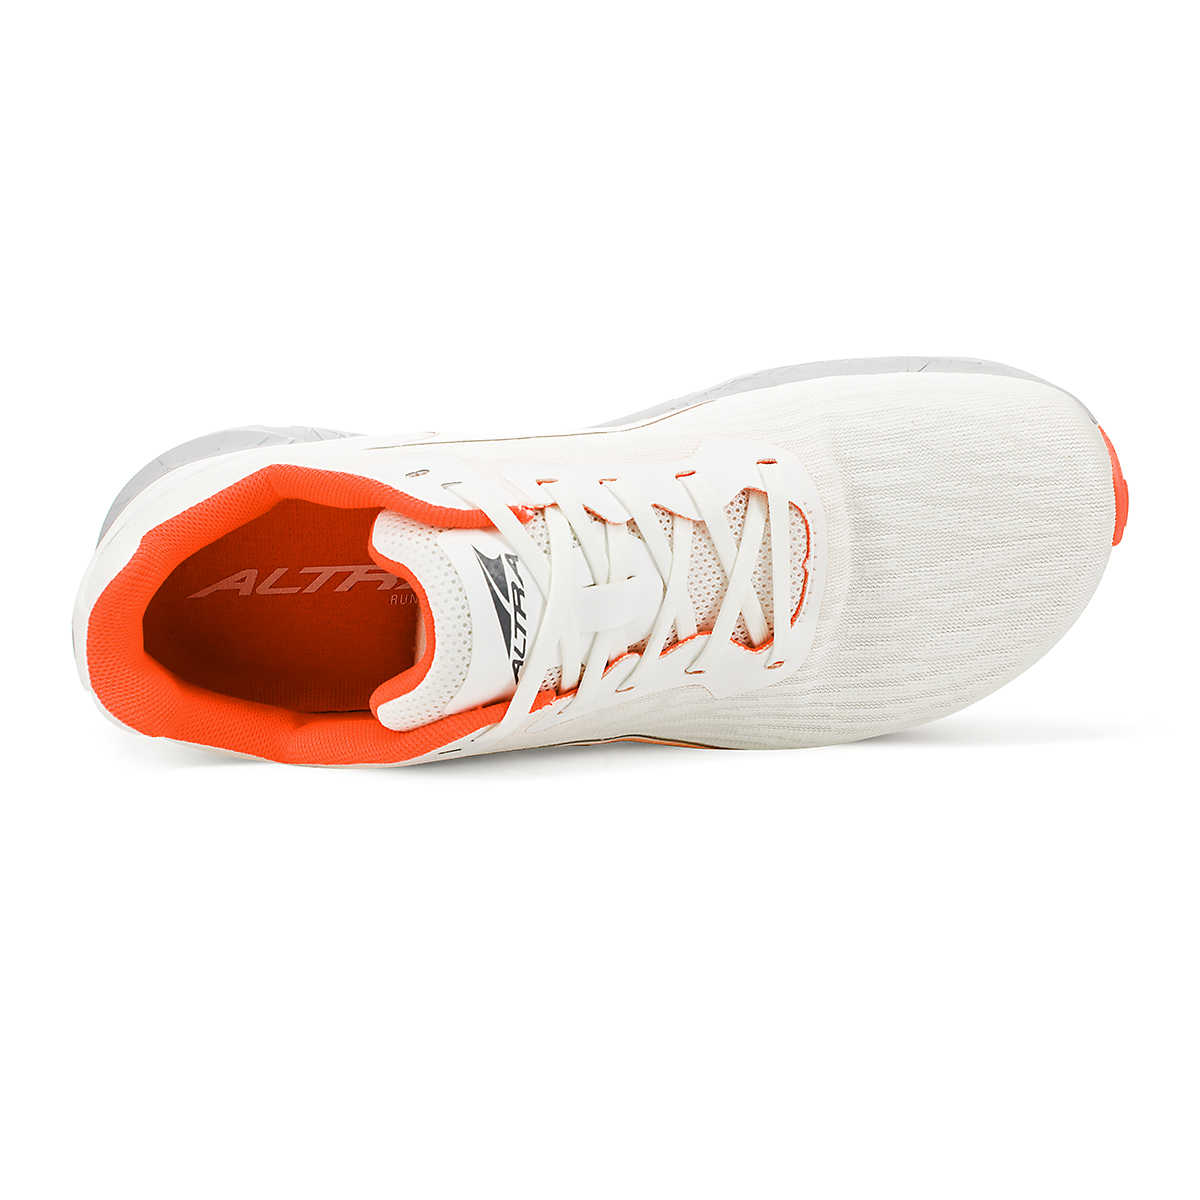 Women's Altra Rivera Running Shoe - Color: White/Coral - Size: 5.5 - Width: Regular, White/Coral, large, image 3